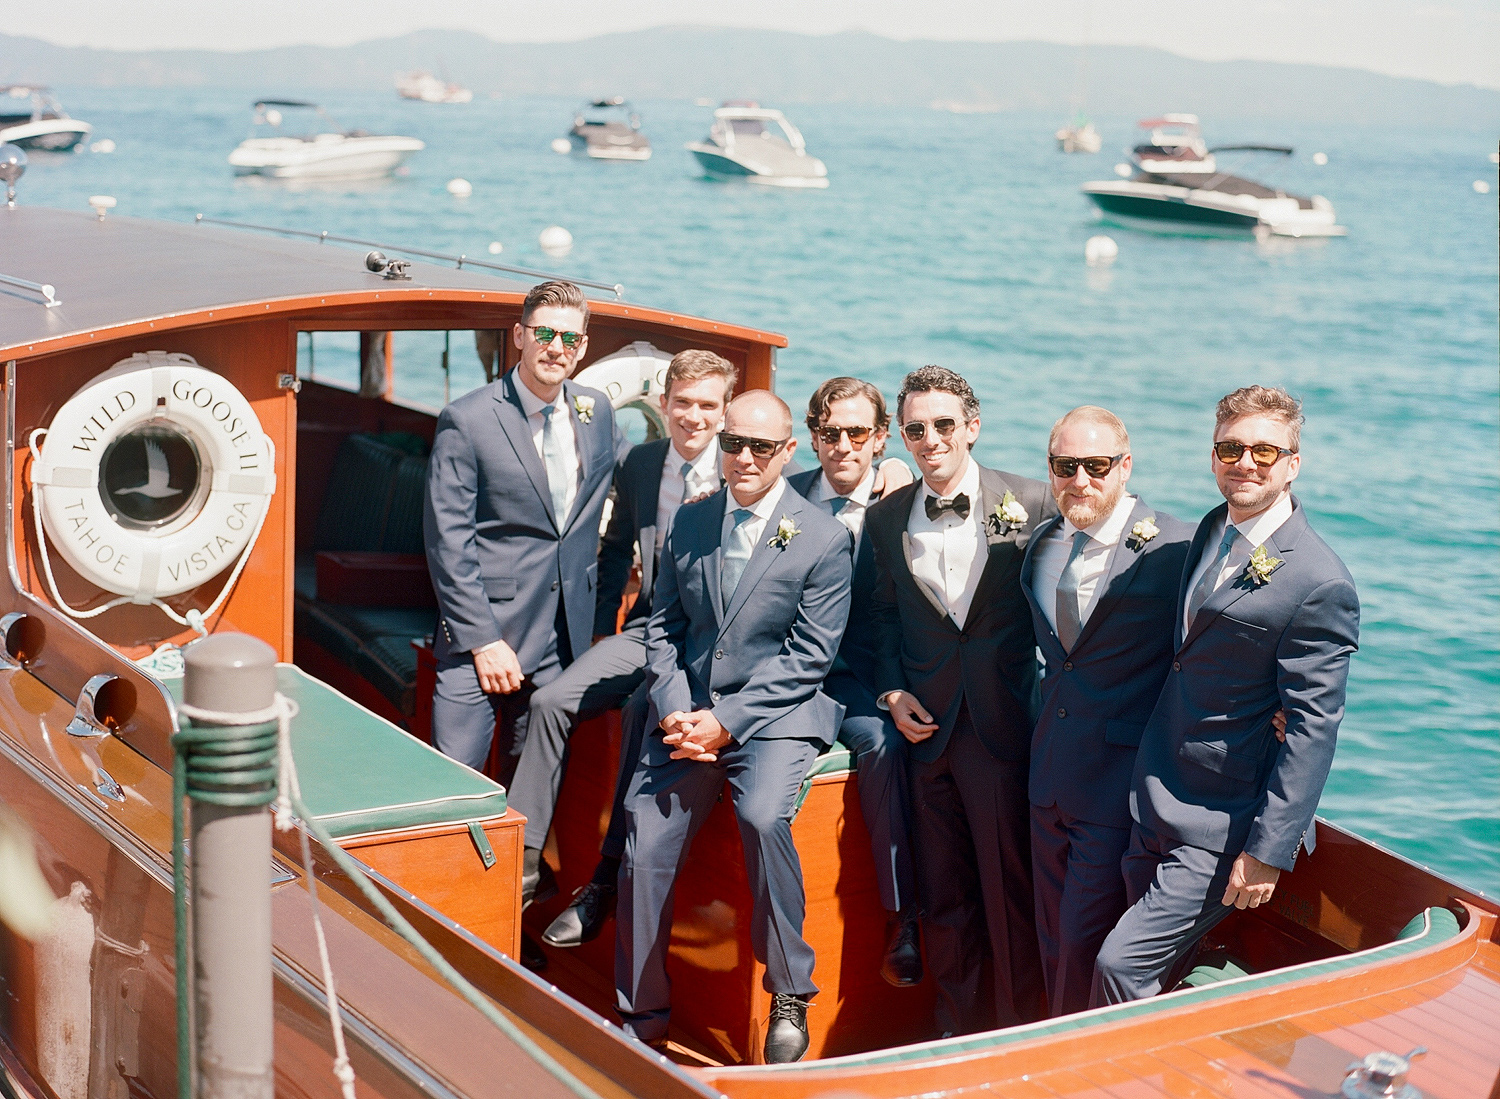 Natalie and Grant wedding groomsmen on red boat